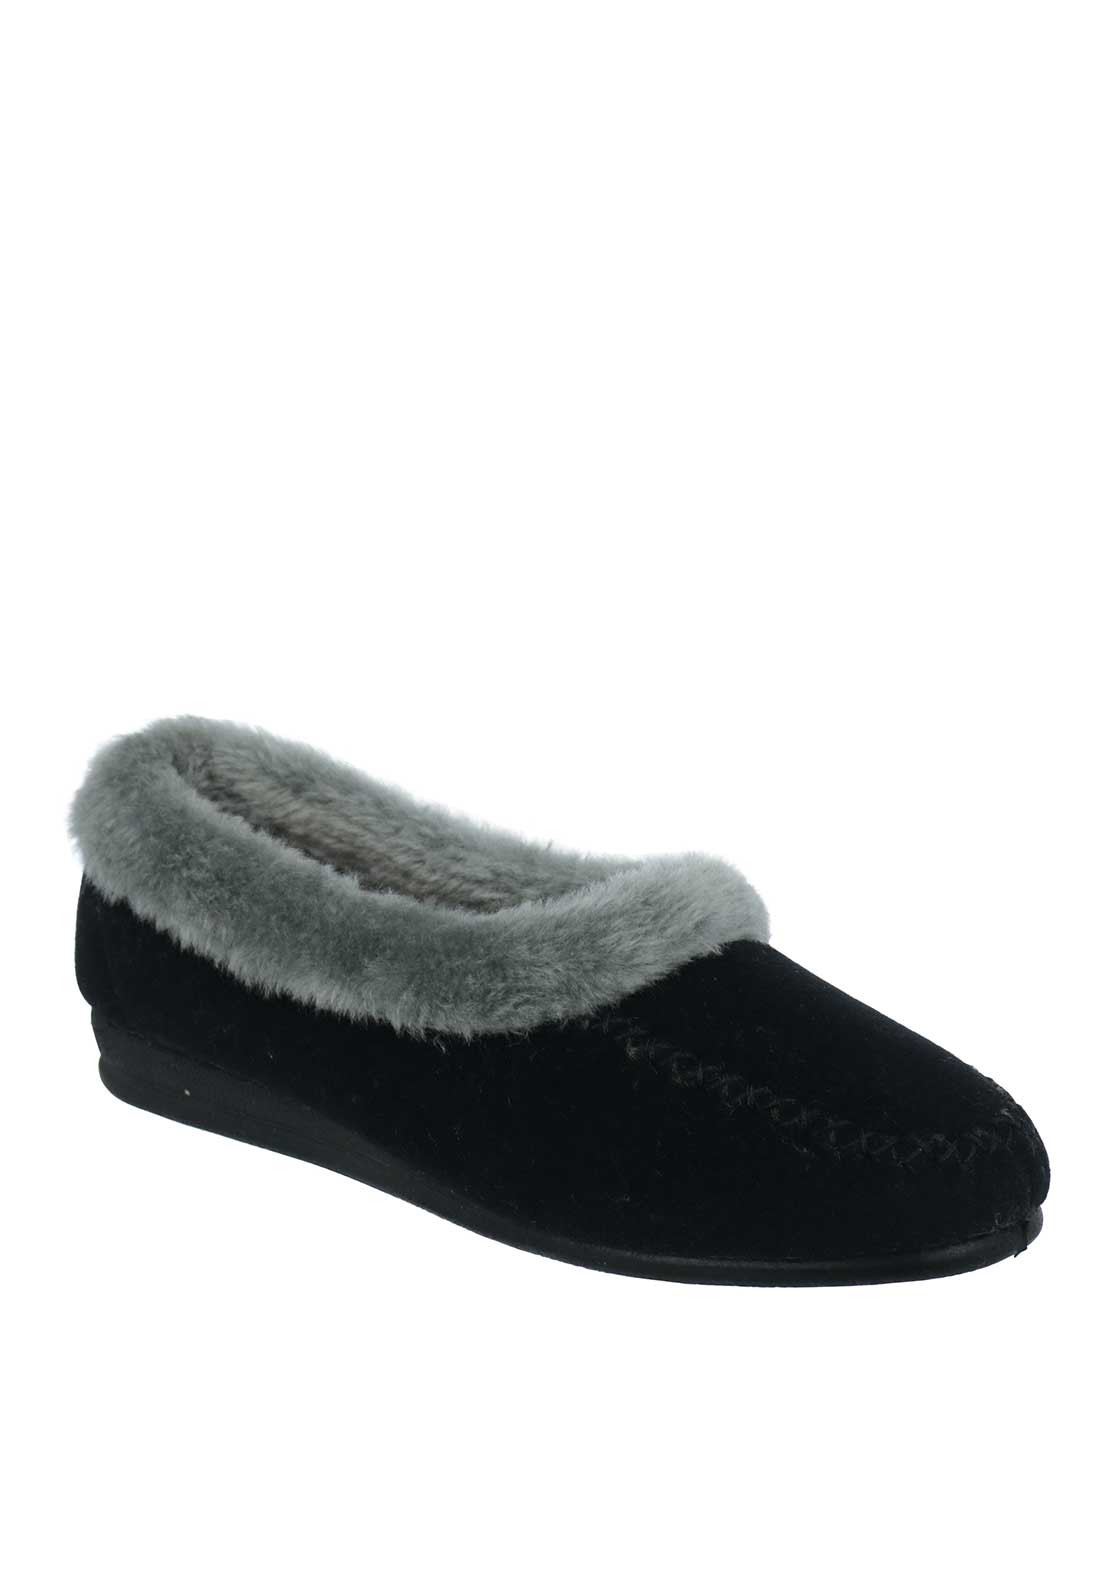 Lunar Womens Earl Moccasin Slippers, Black